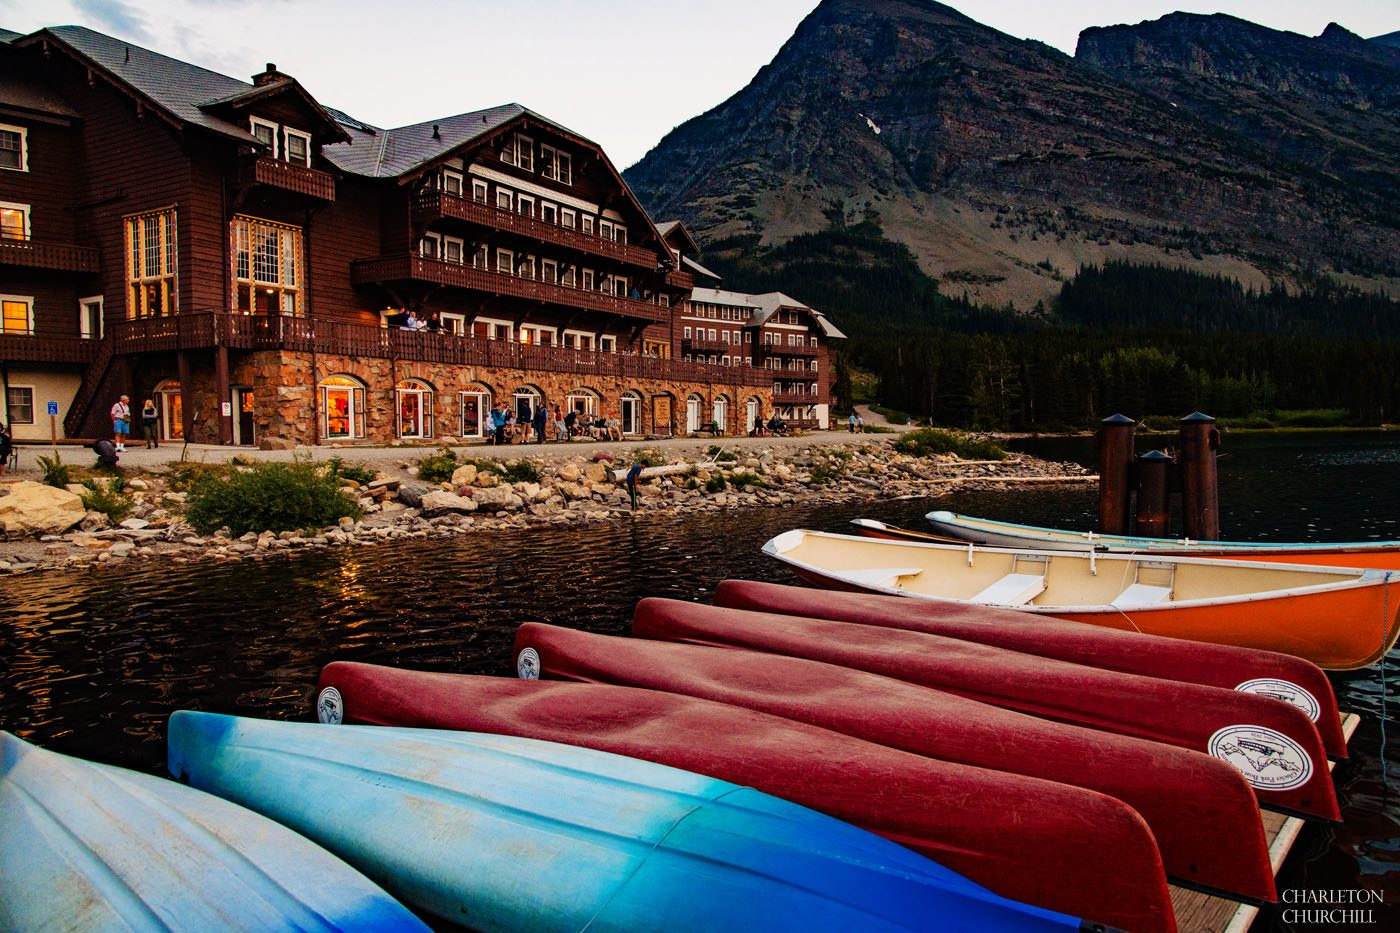 canoes and lake front of Many Glaciers Hotel lodging for wedding